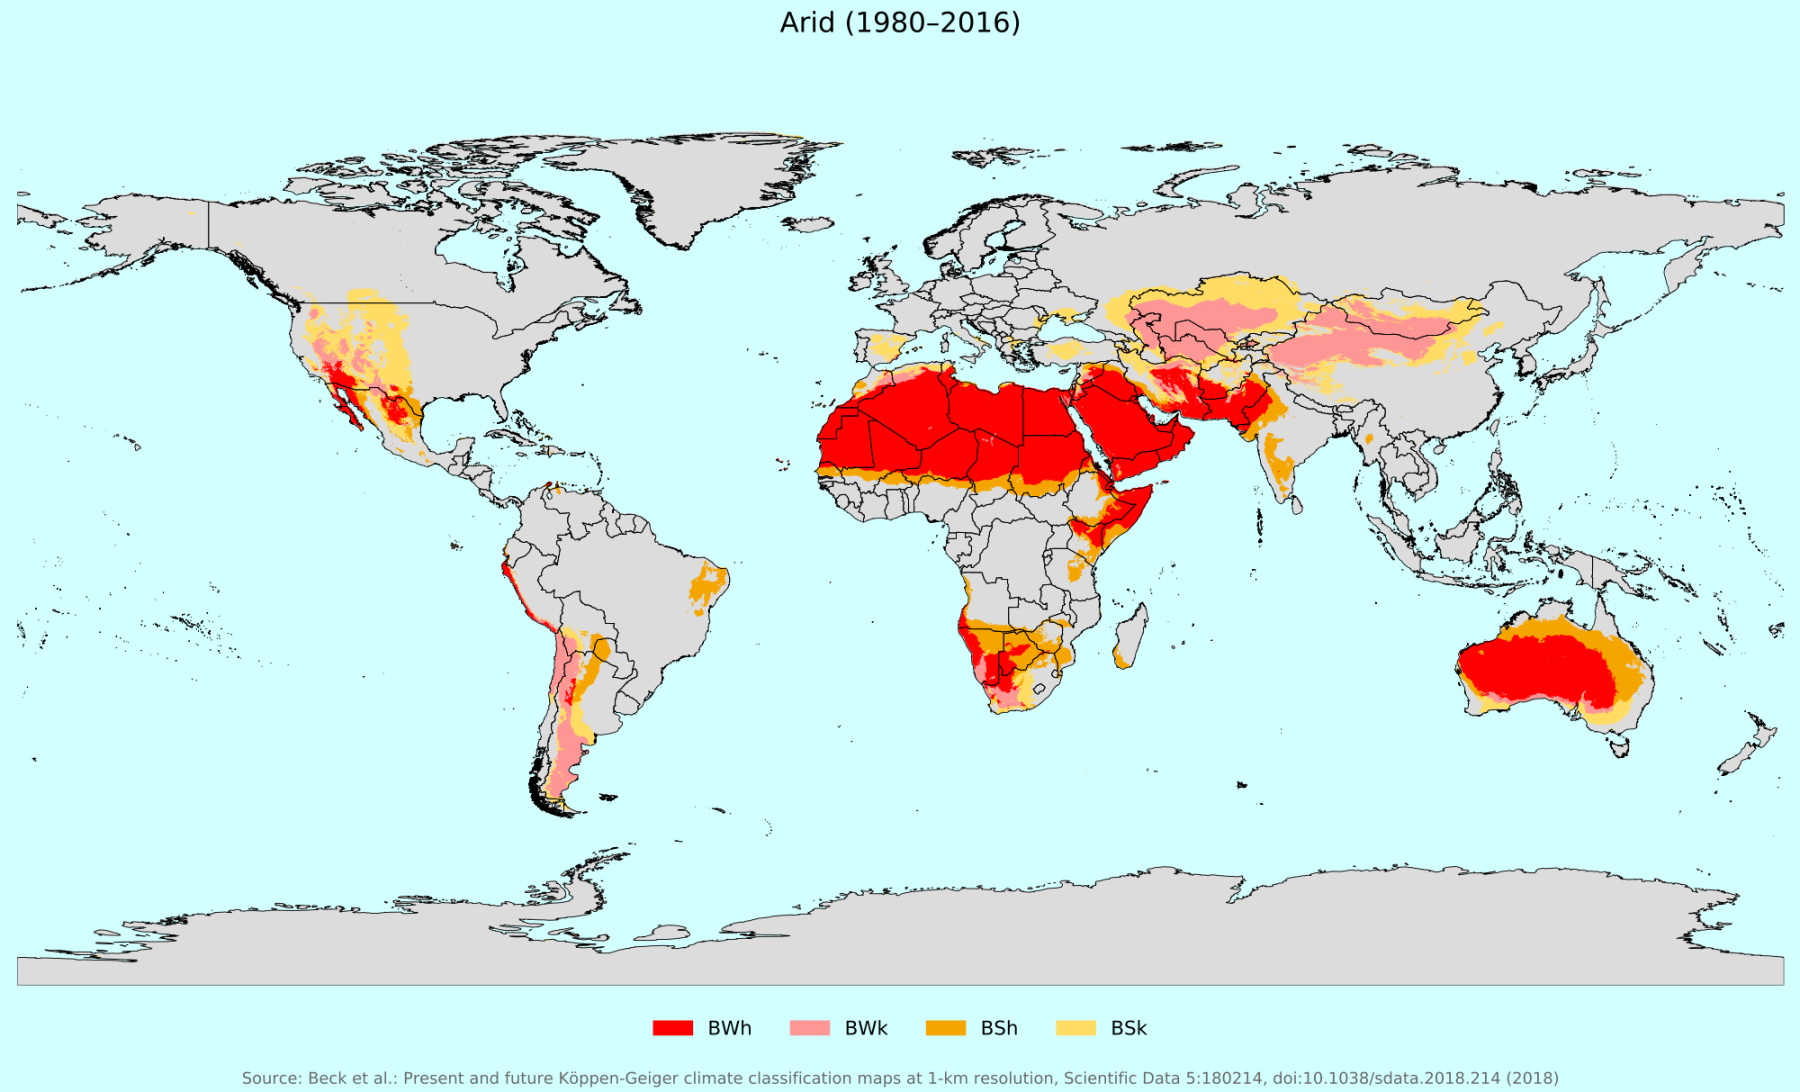 Koppen Geiger Climate Classification Map For Arid Regions